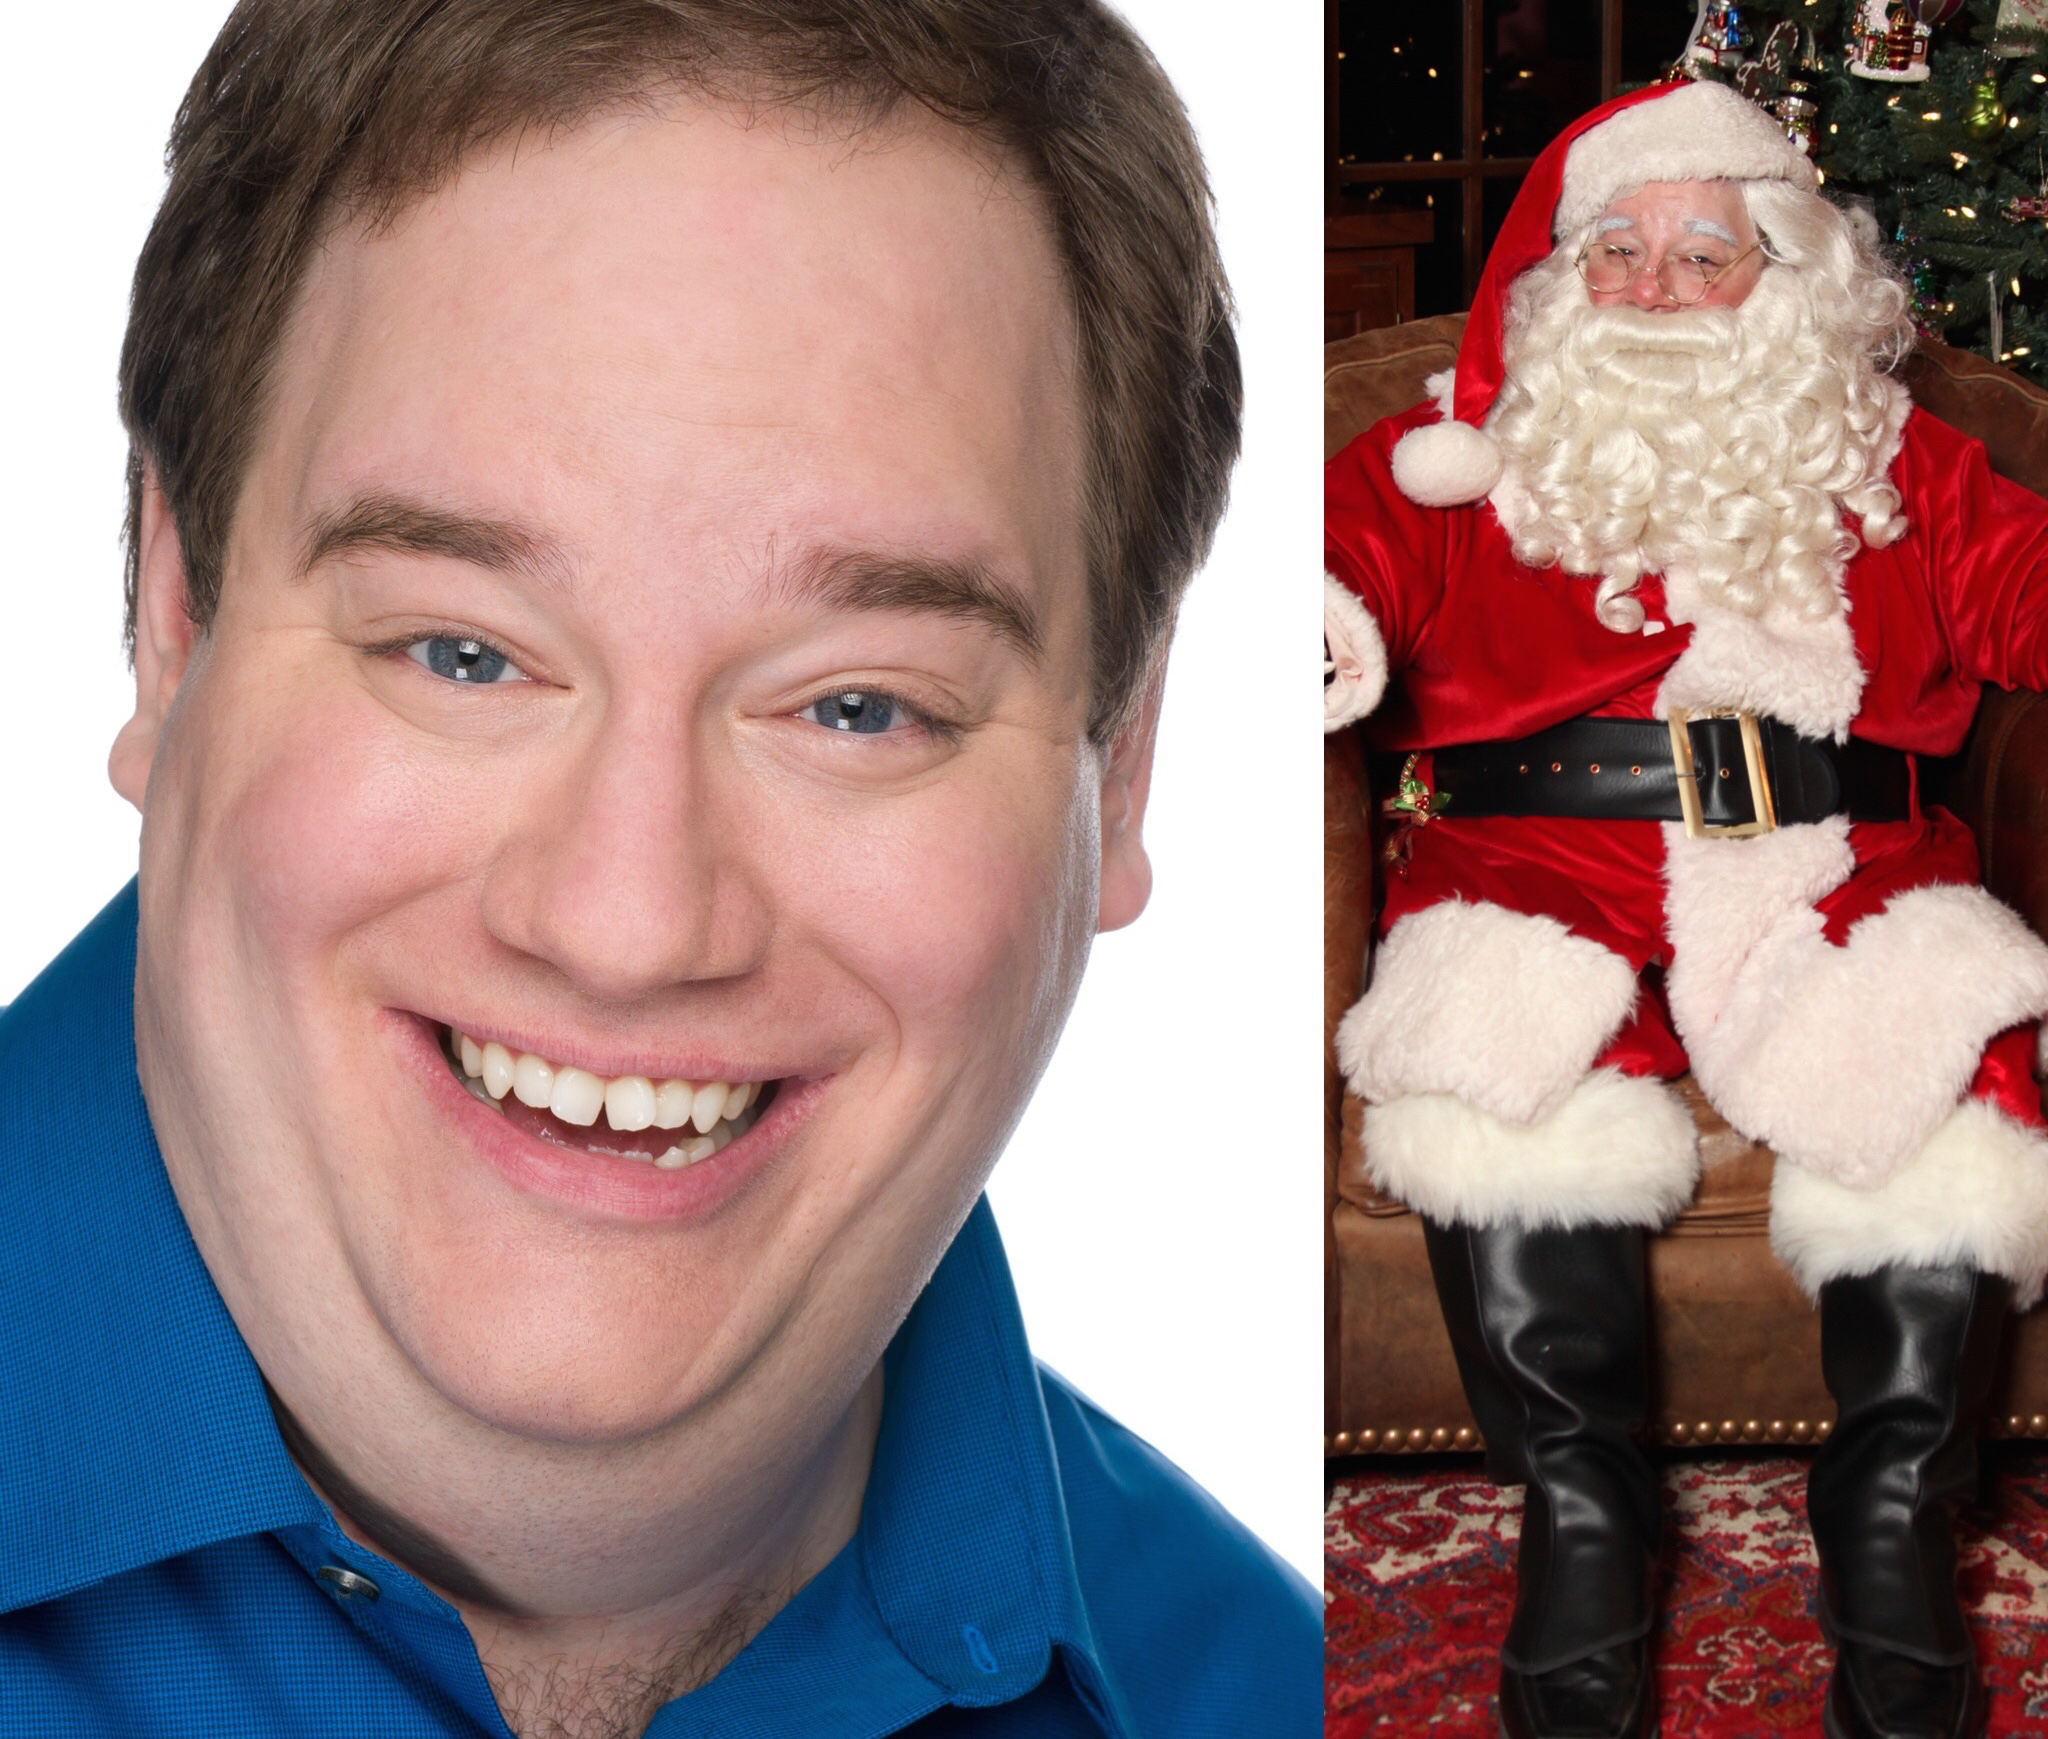 Quest To Become Santa Is Real For RVA Actor